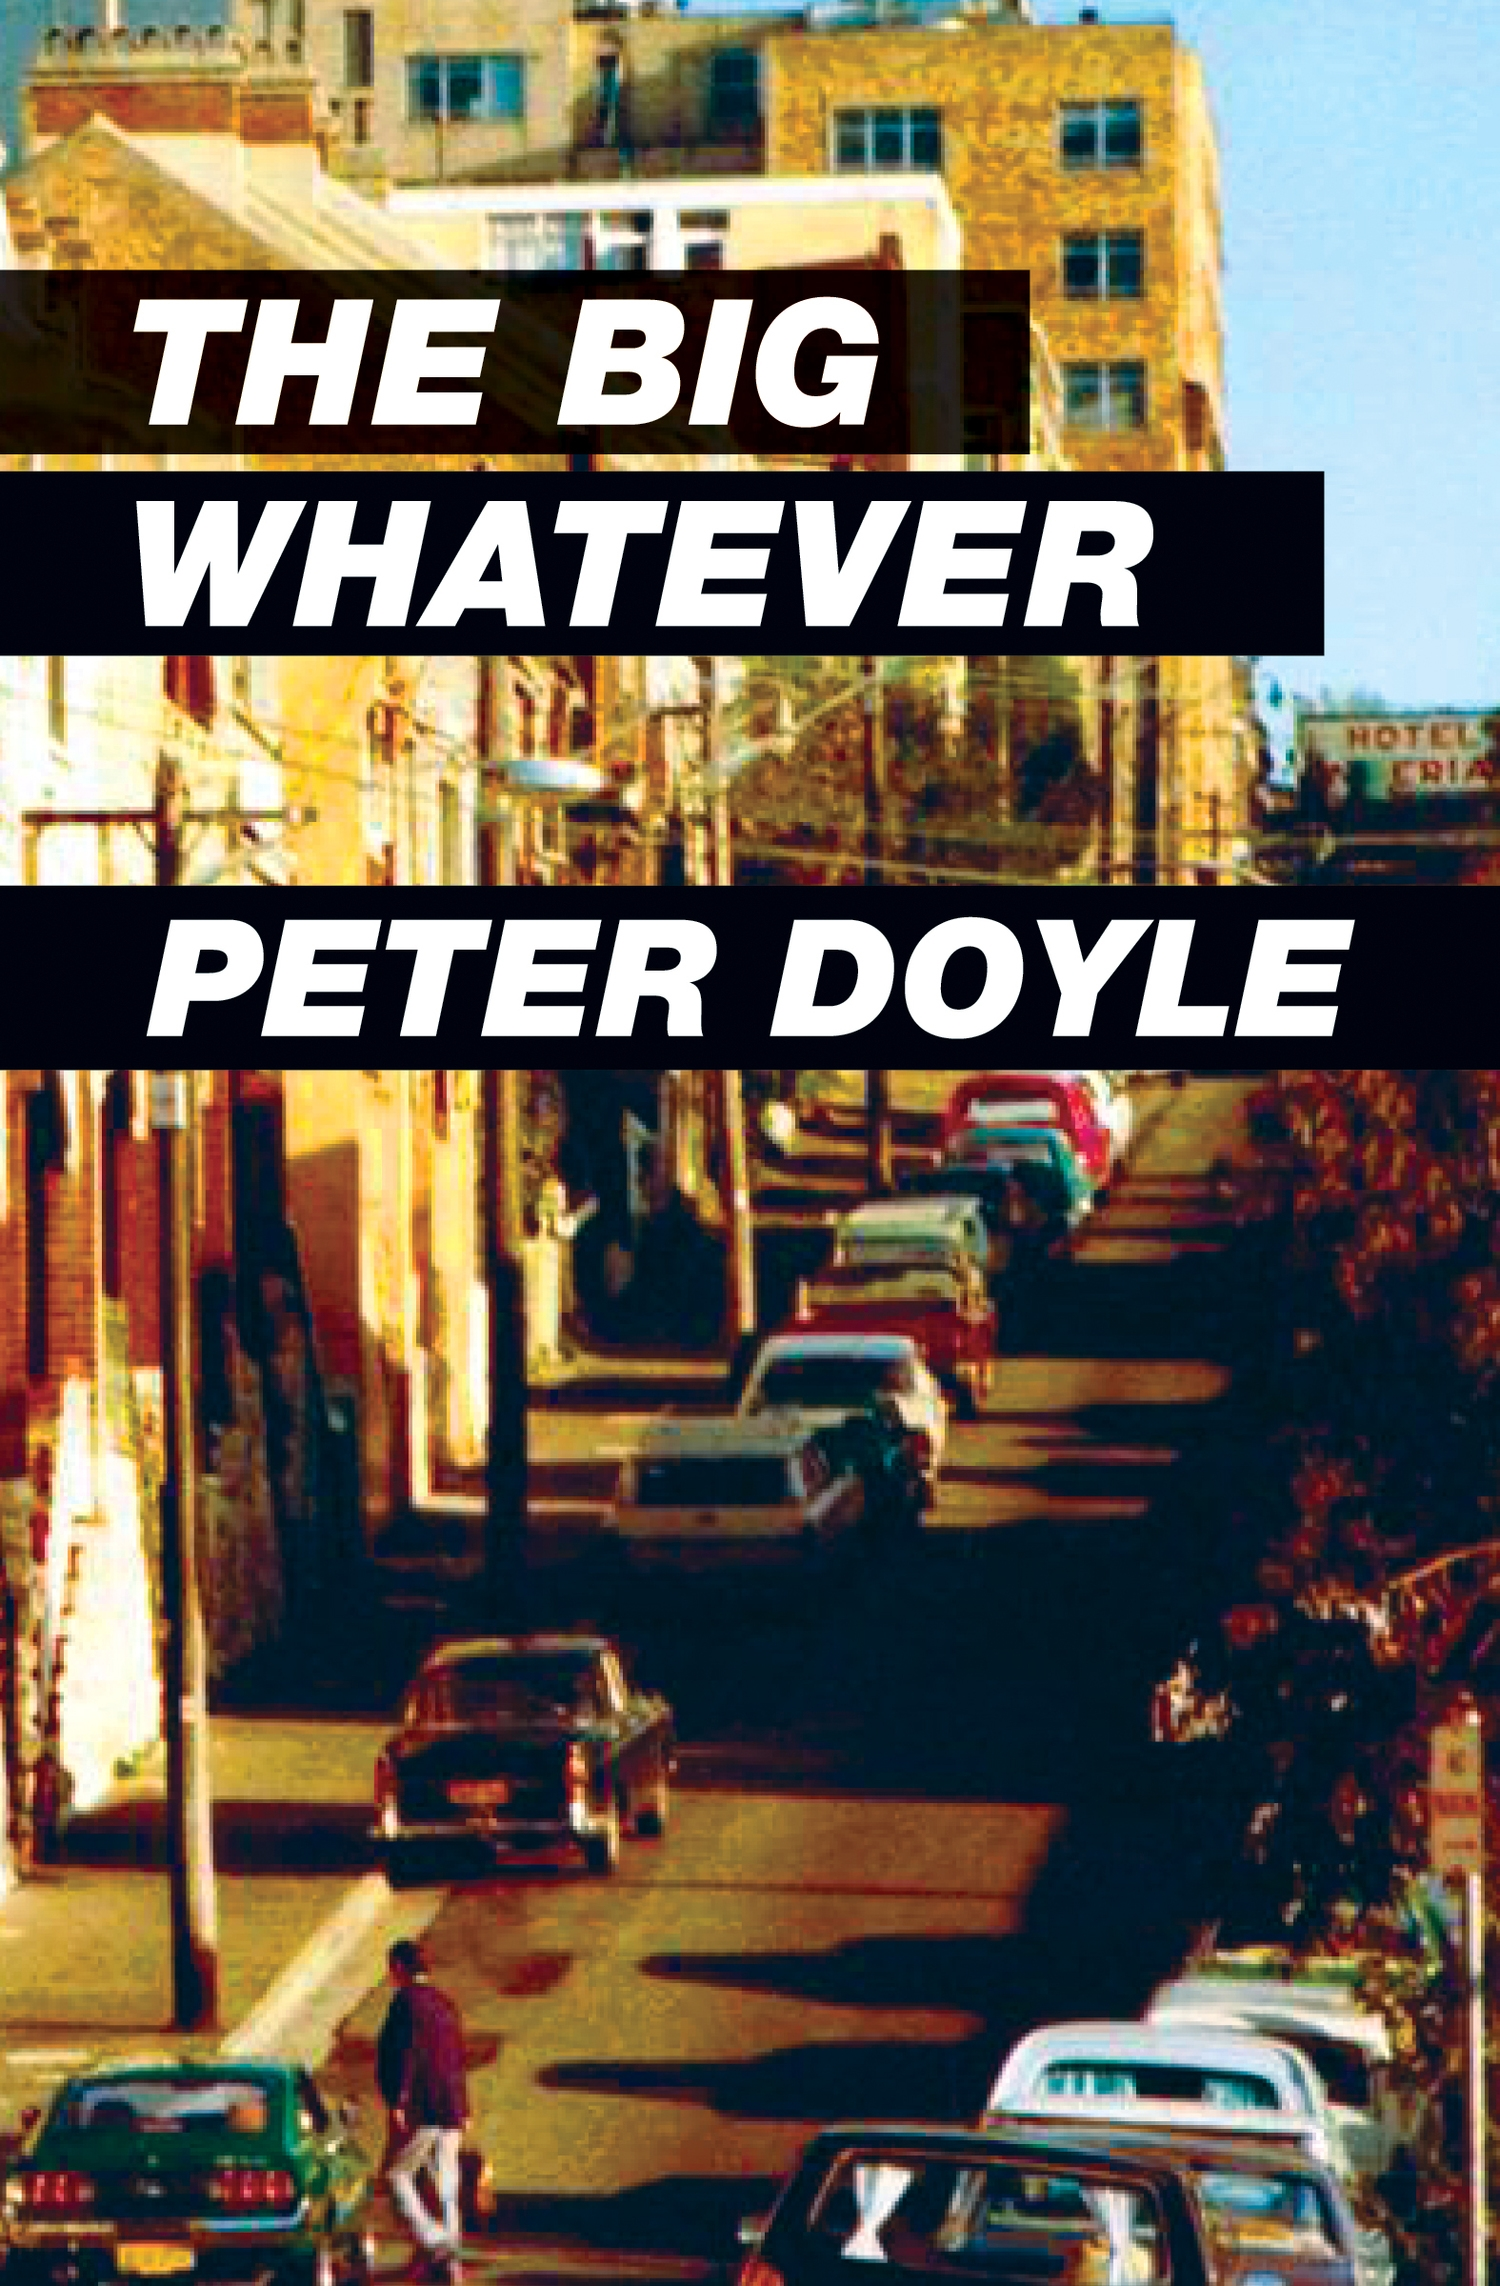 Peter Doyle / The Big Whatever